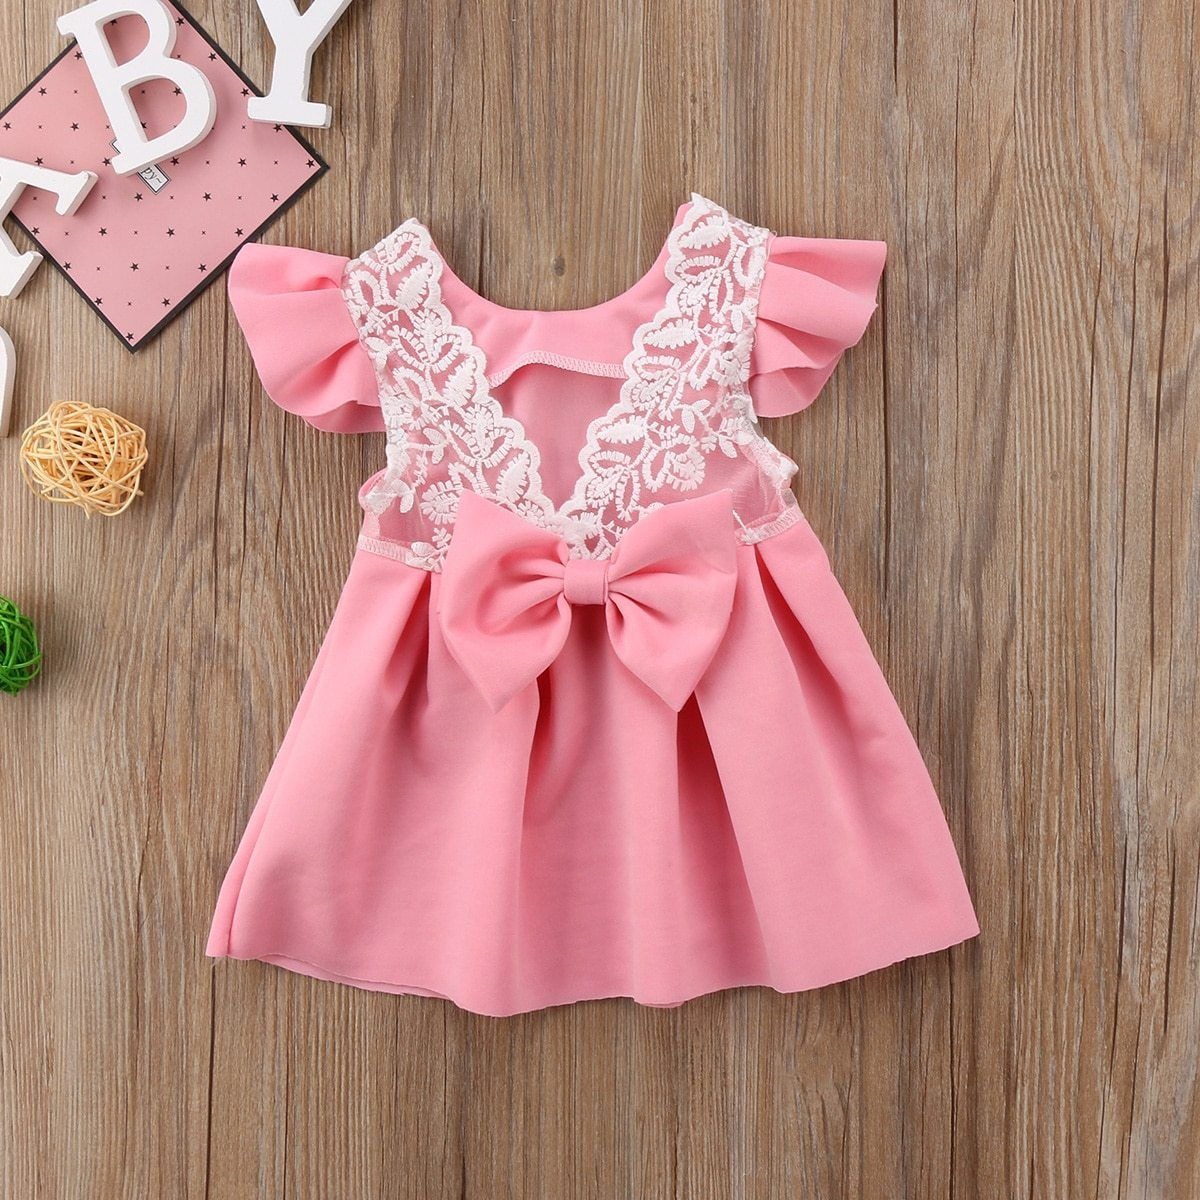 6af183248 Girls Dresses - Peach and Pumpkins